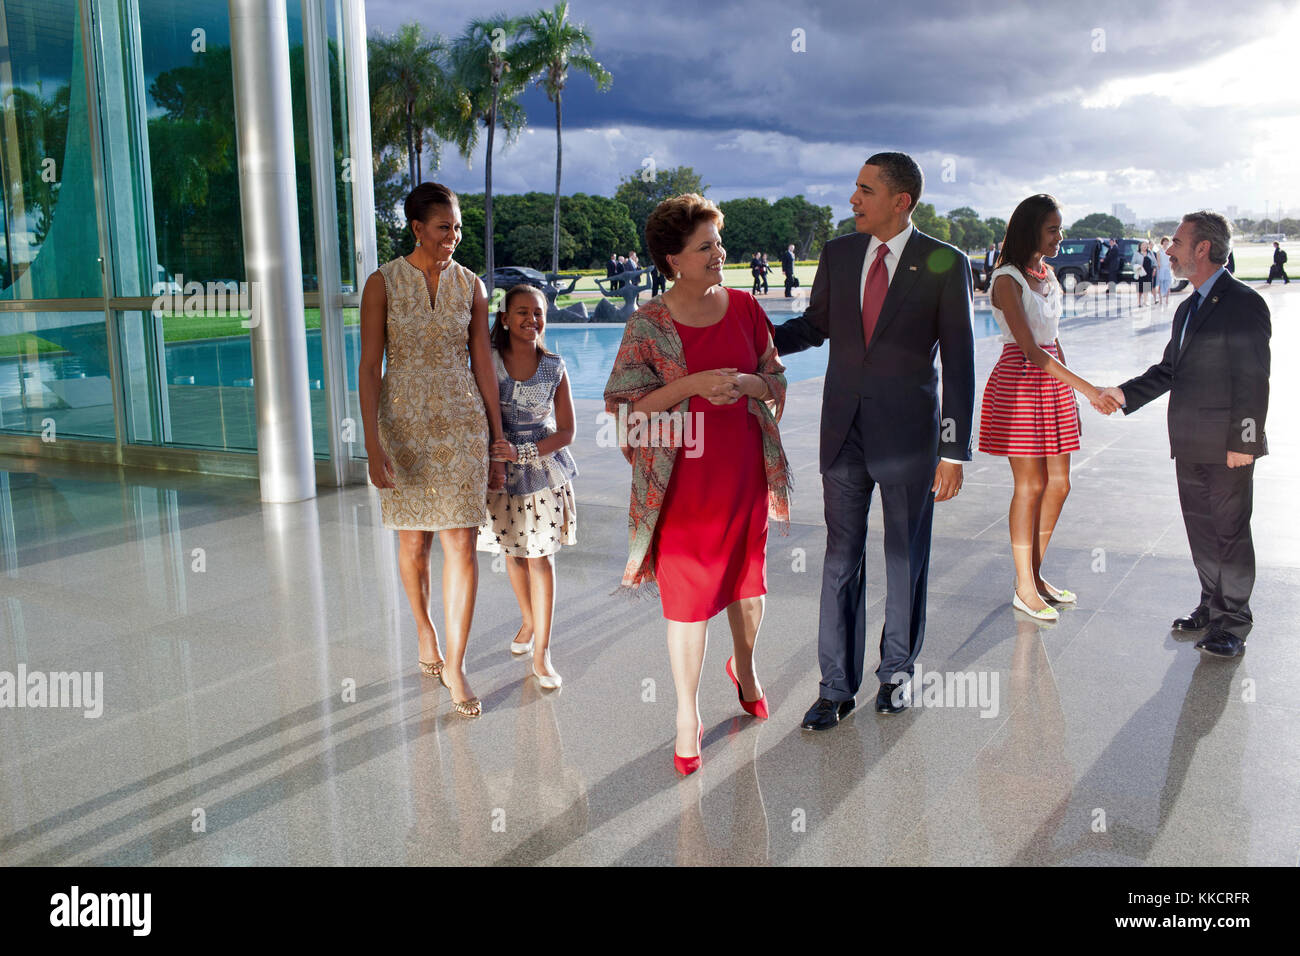 March 19, 2011 'The late afternoon light was bouncing off the glass and steel at the Palacio do Alvorada in - Stock Image